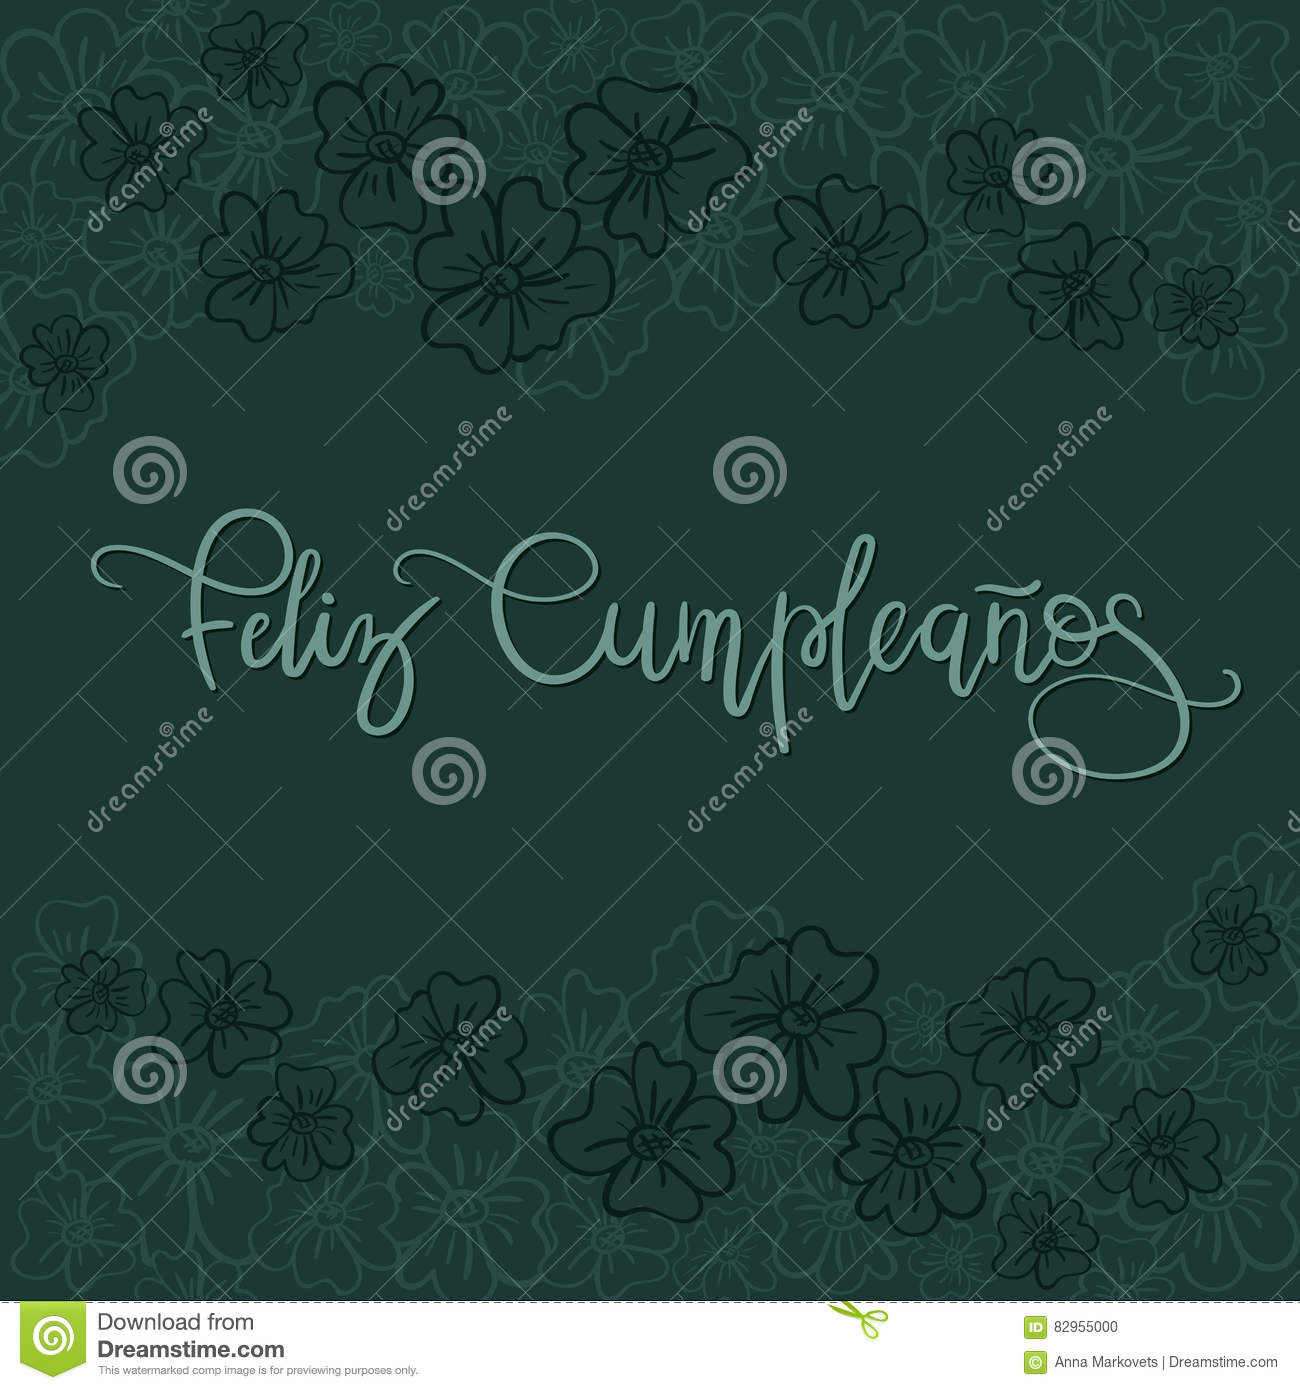 Feliz cumpleanos happy birthday spanish text stock